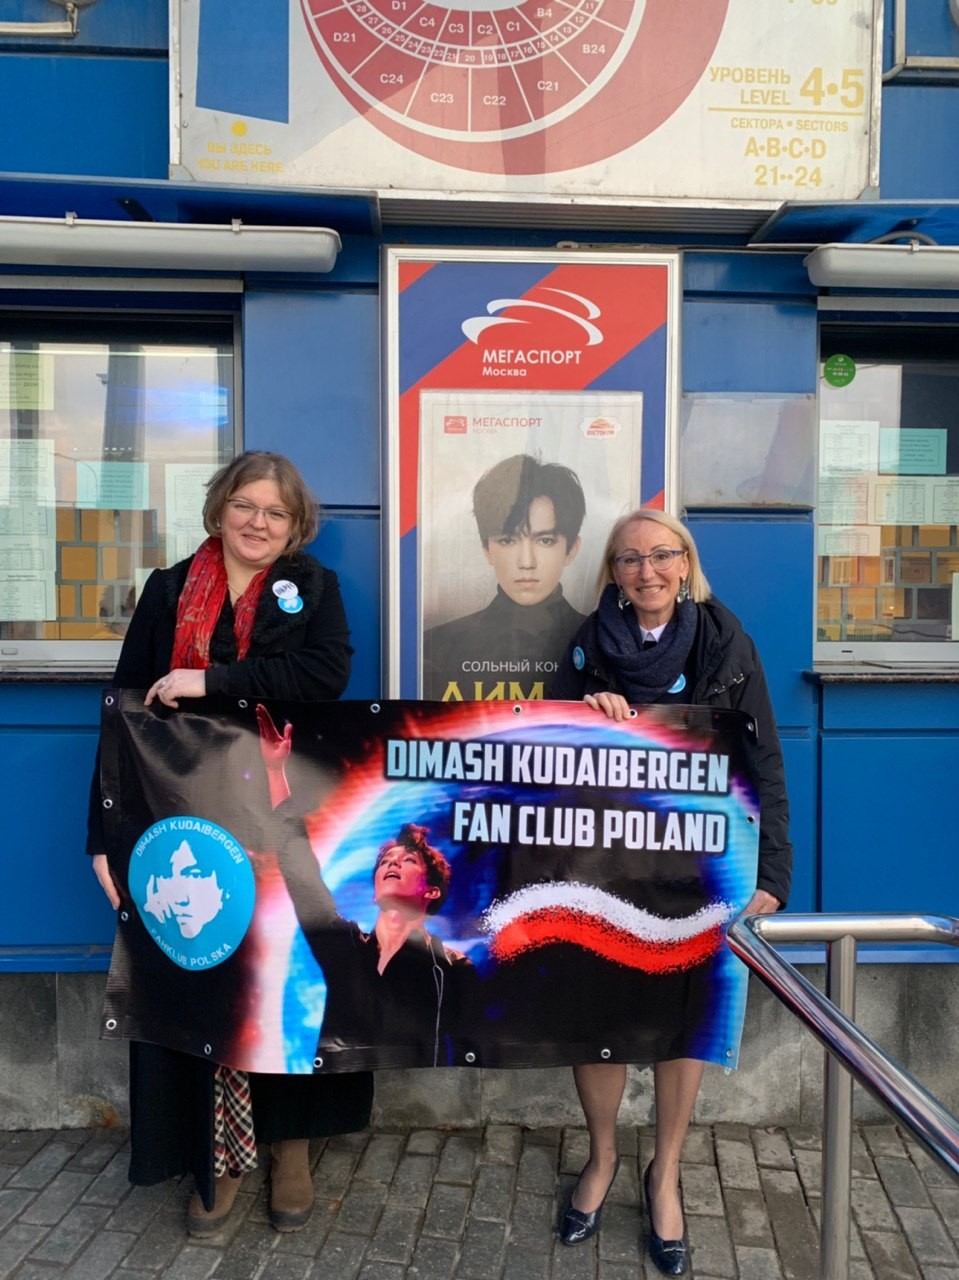 Only a few minutes left before Dimash's concert in Moscow